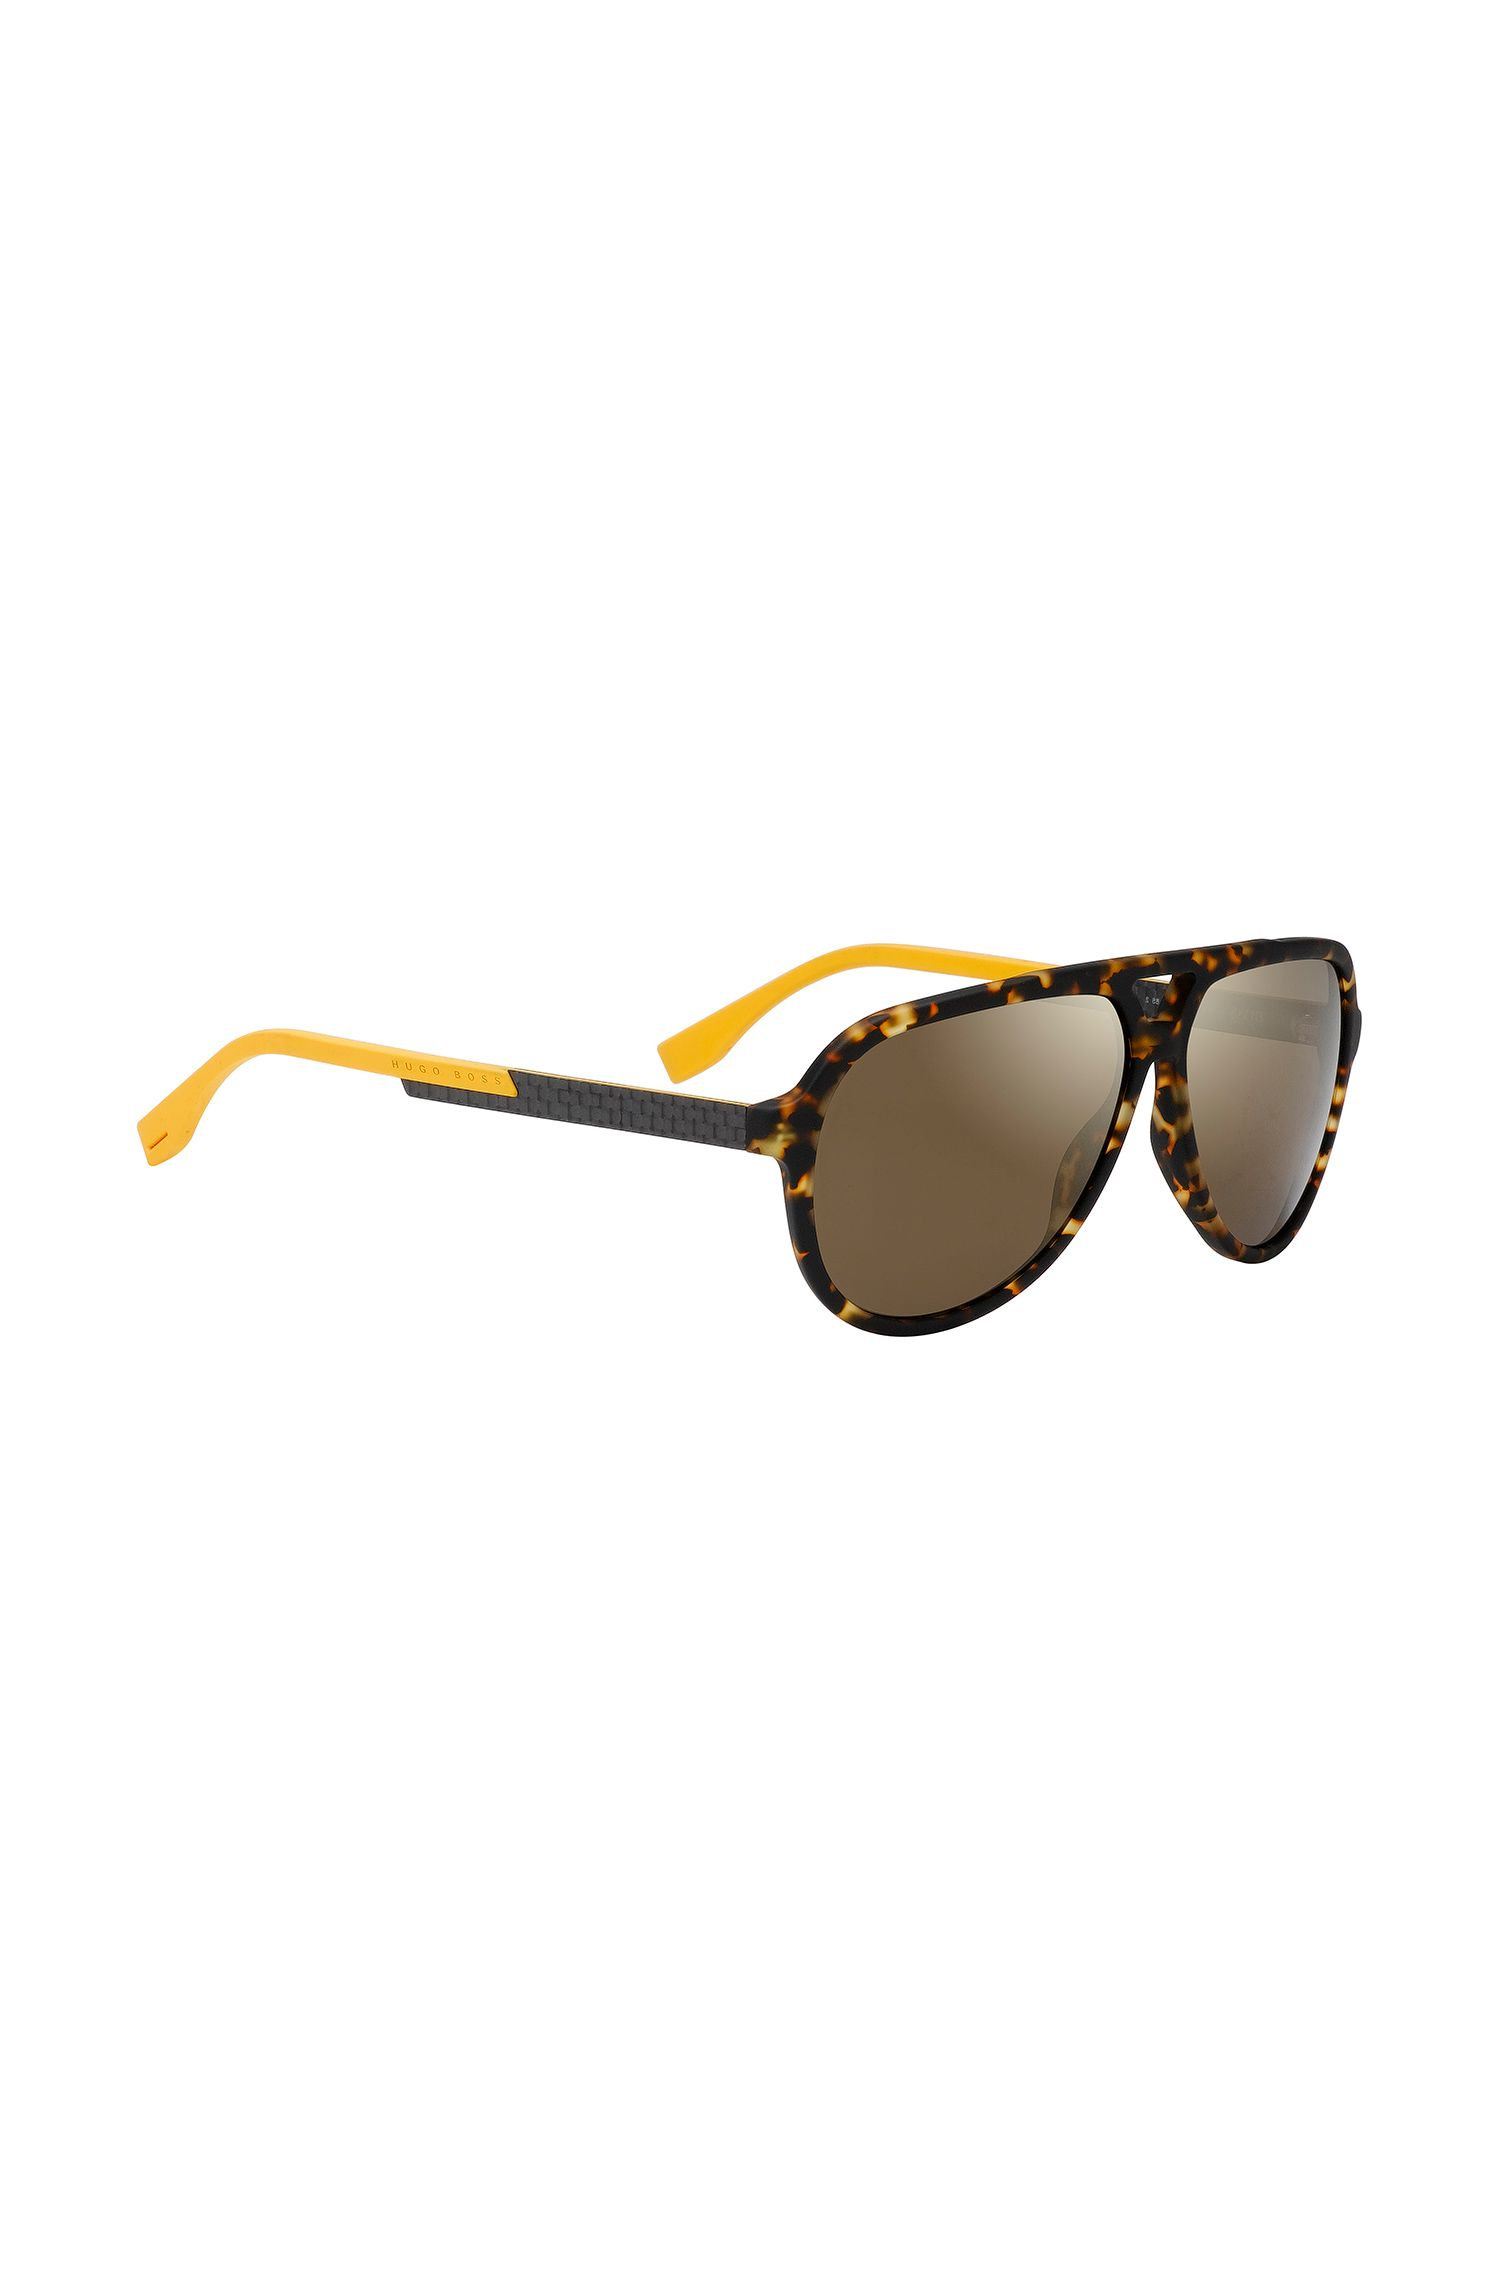 Sunglasses: 'BOSS 0731/S'